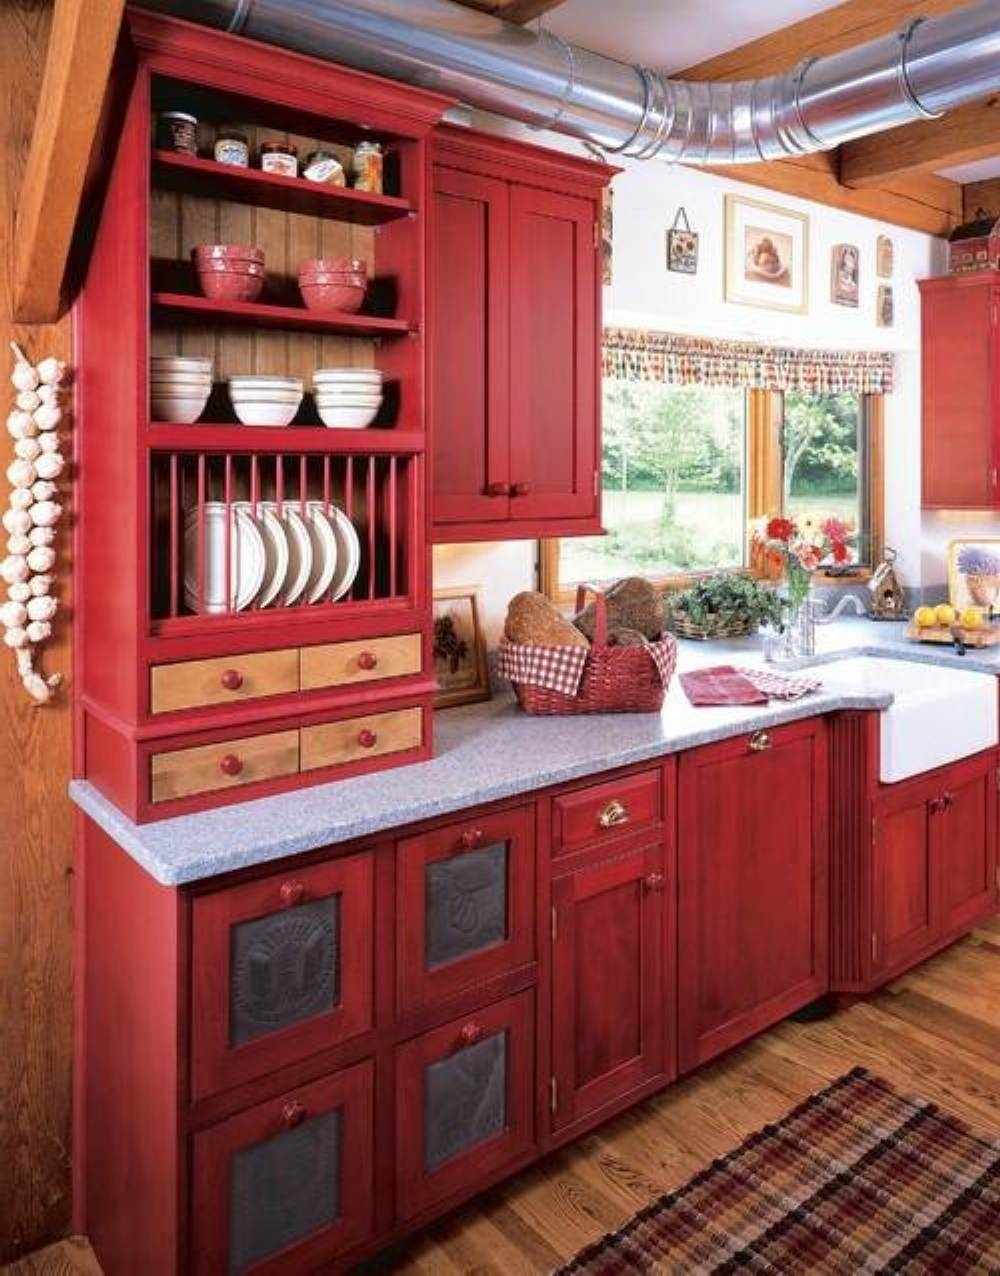 Vintage Red Kitchen Cabinets | Kitchen Cabinet